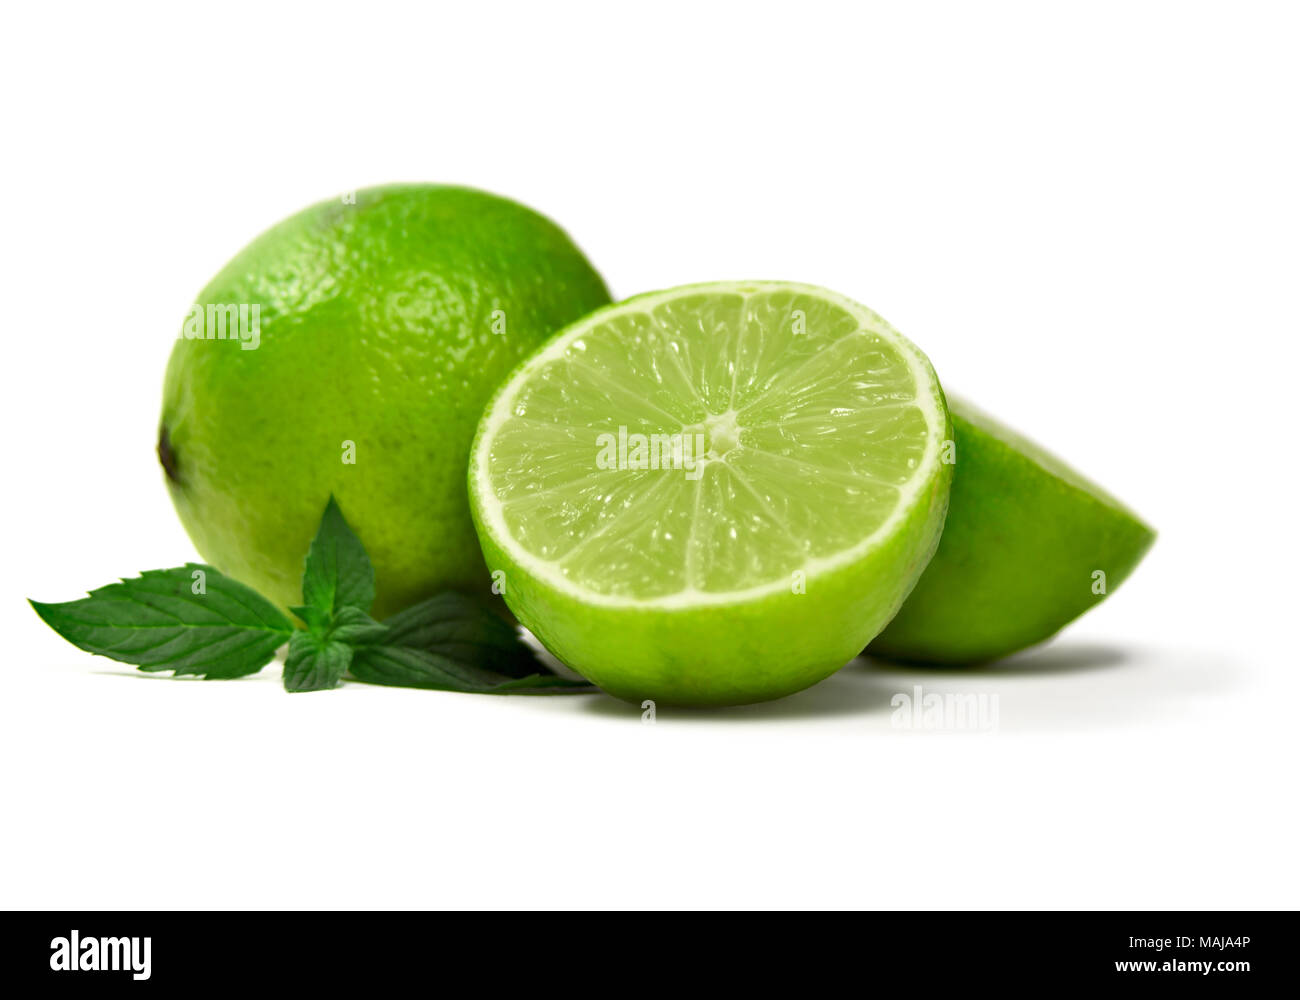 Fresh limes, isolated on white background. Cross section and whole lime fruits with mint leaf, citrus fruit background. - Stock Image